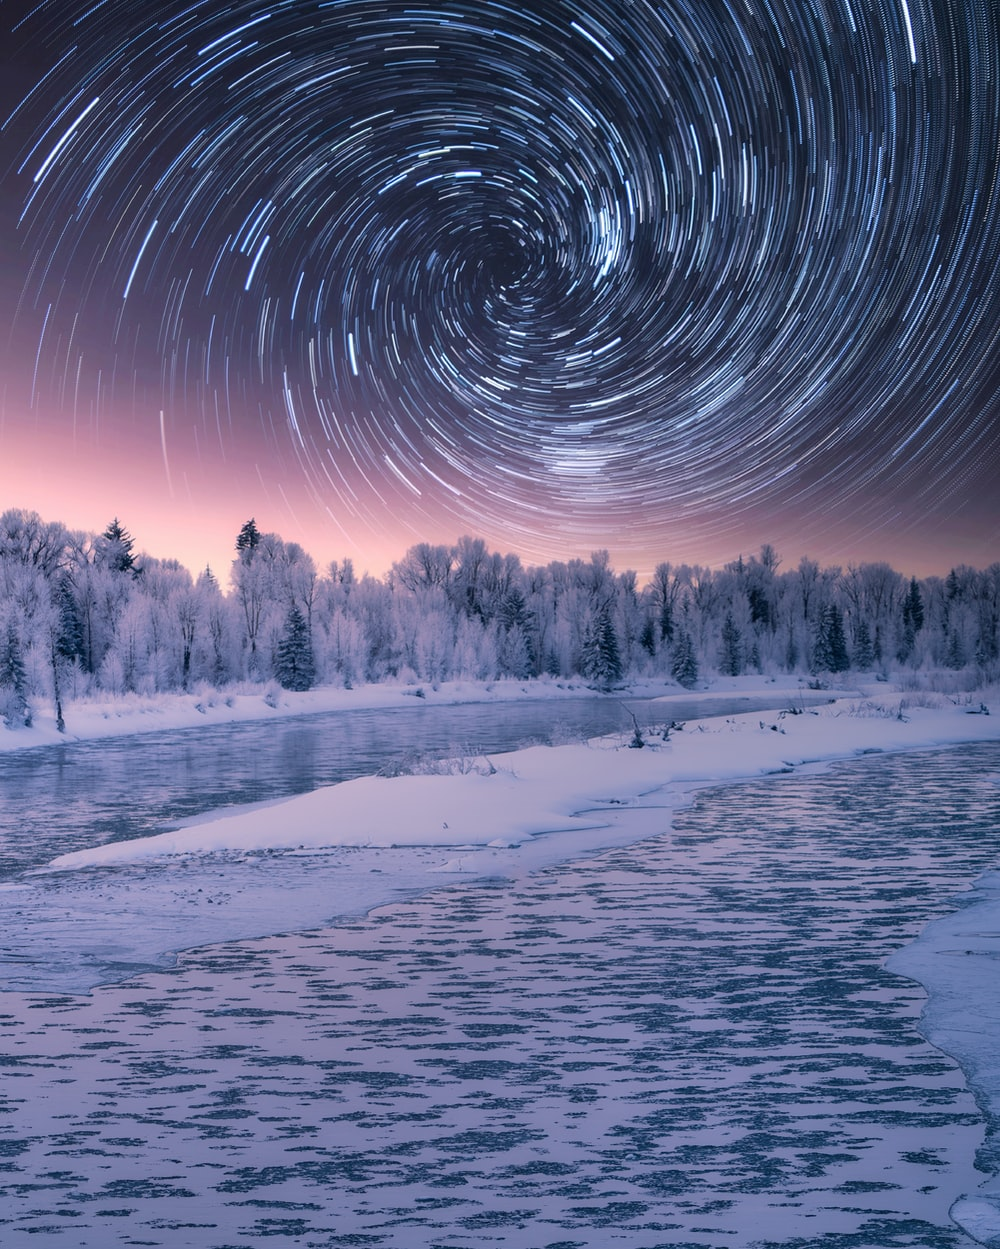 time lapse photography of stars above body of water during night time